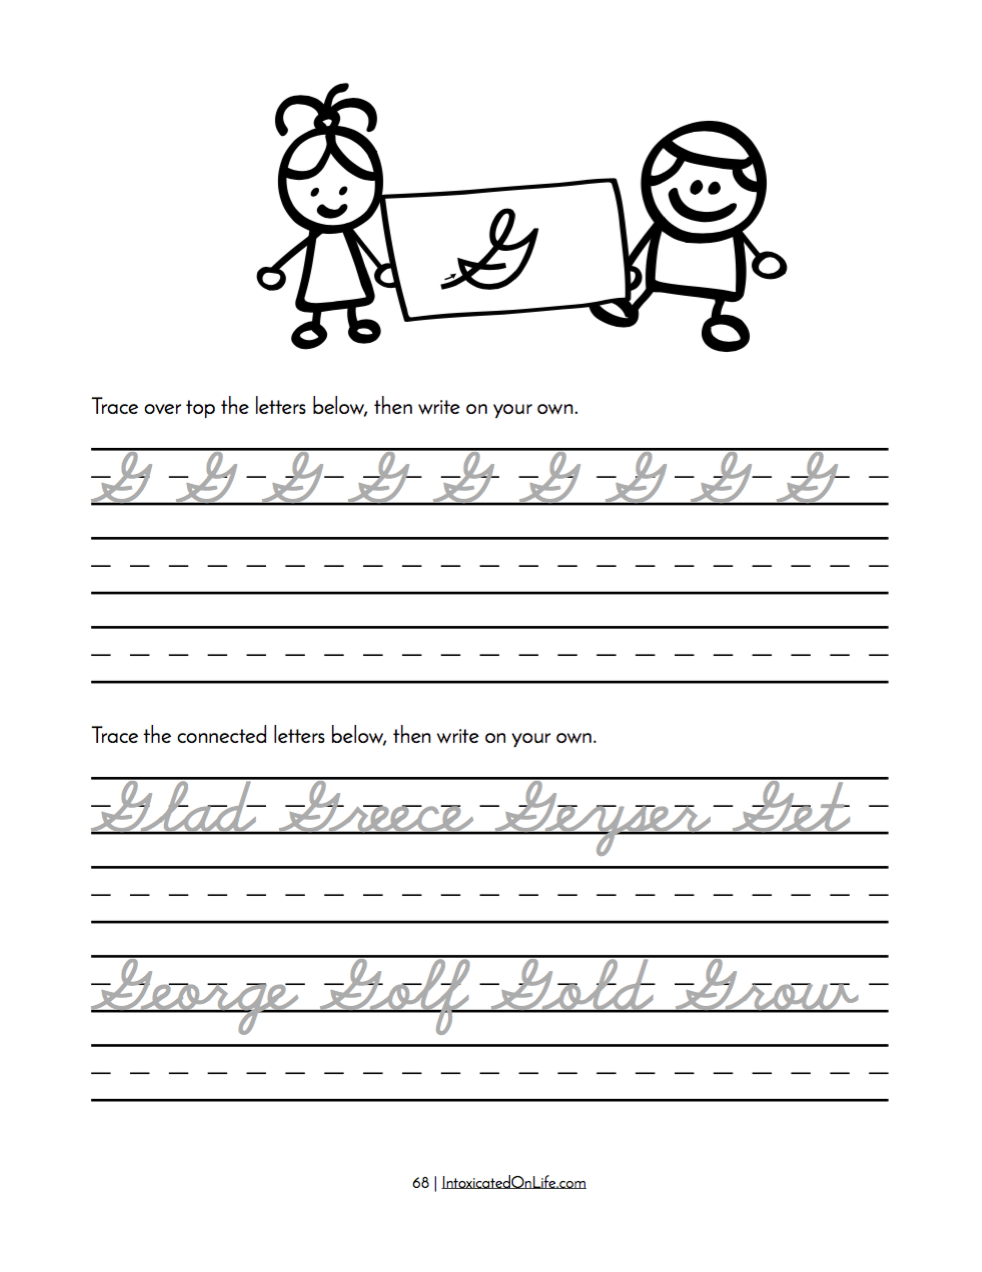 Cursive Creations A Beginners Guide To Handwriting Teaching Cursive Cursive Writing Teaching Cursive Writing [ 1272 x 982 Pixel ]